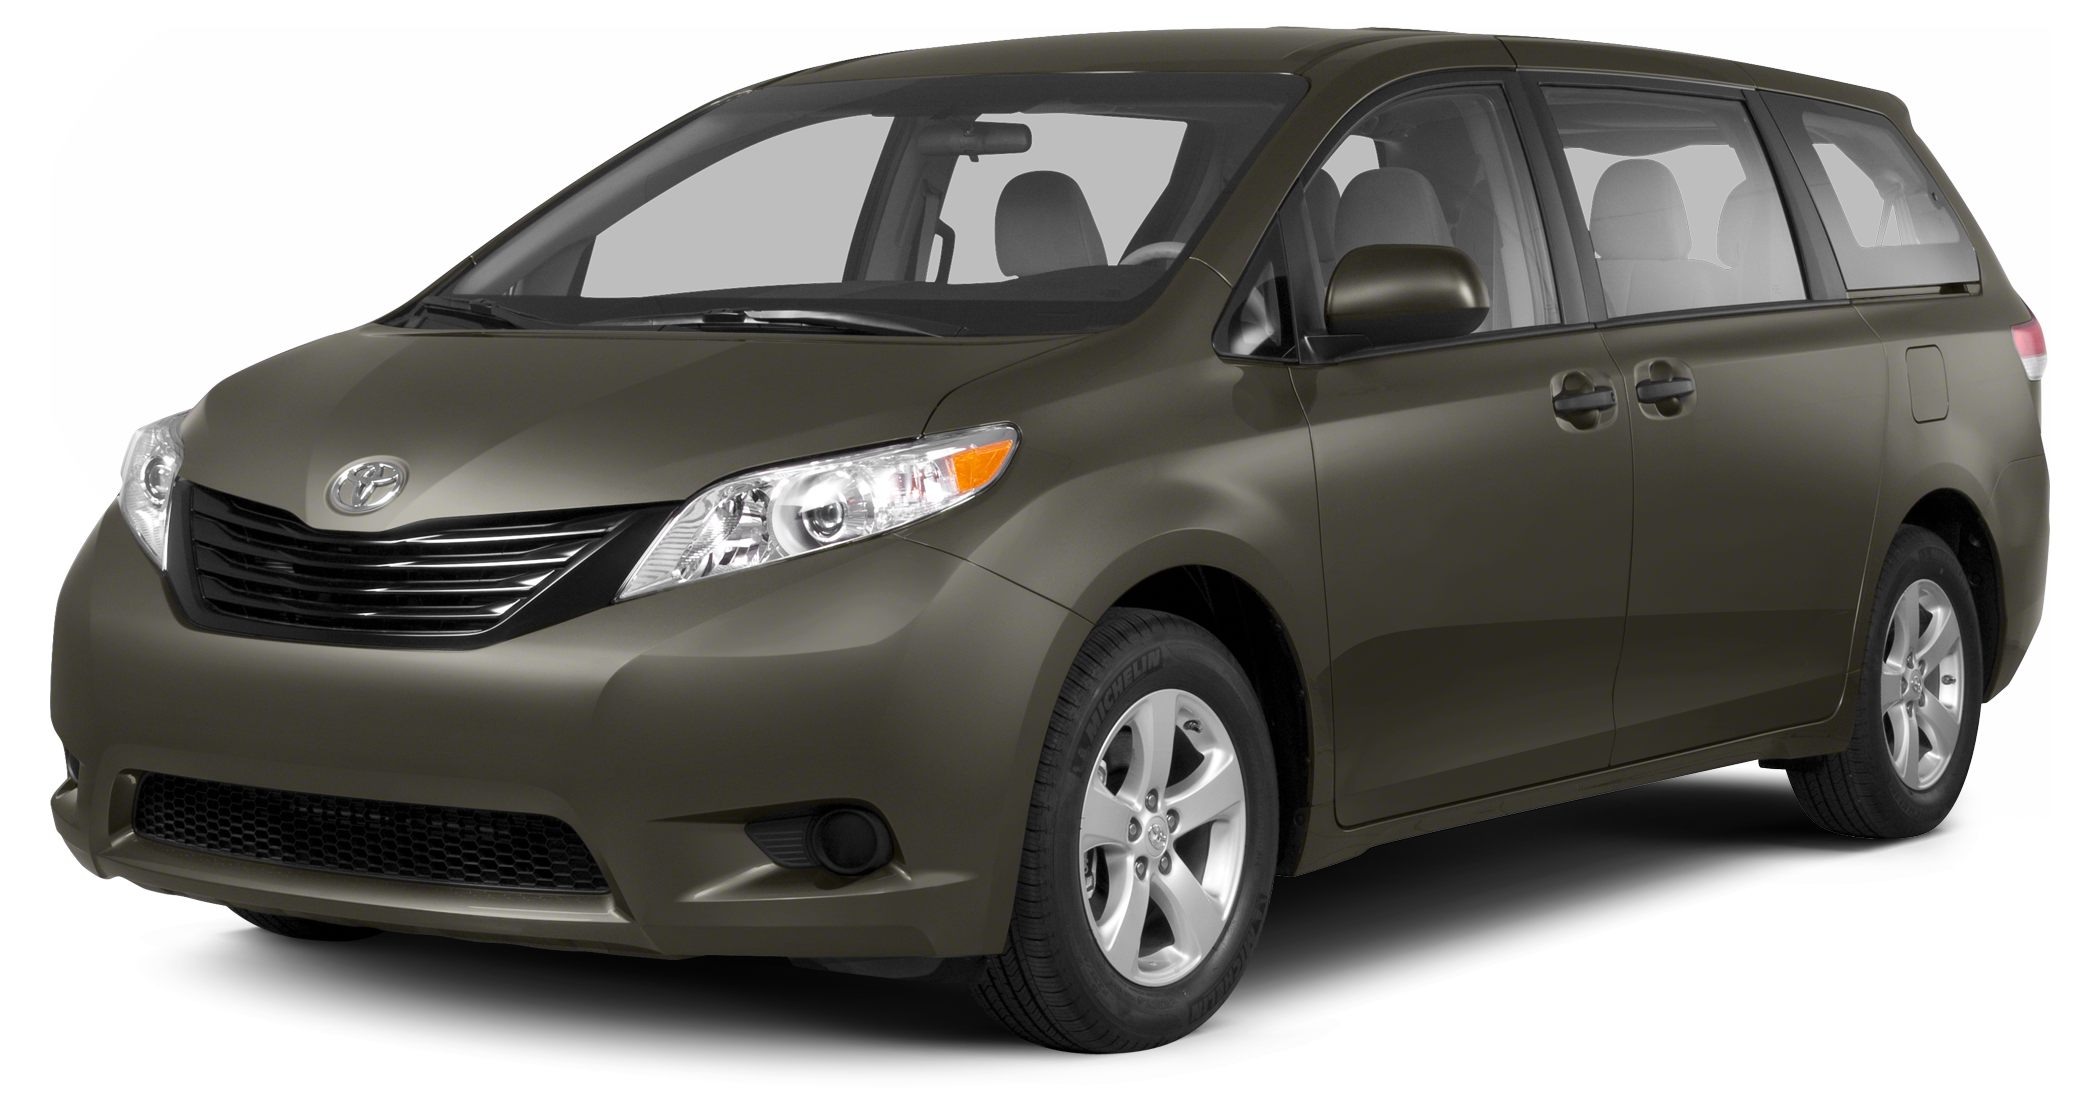 2013 Toyota Sienna XLE PREMIUM  KEY FEATURES ON THIS 2013 Toyota Sienna include but not limited